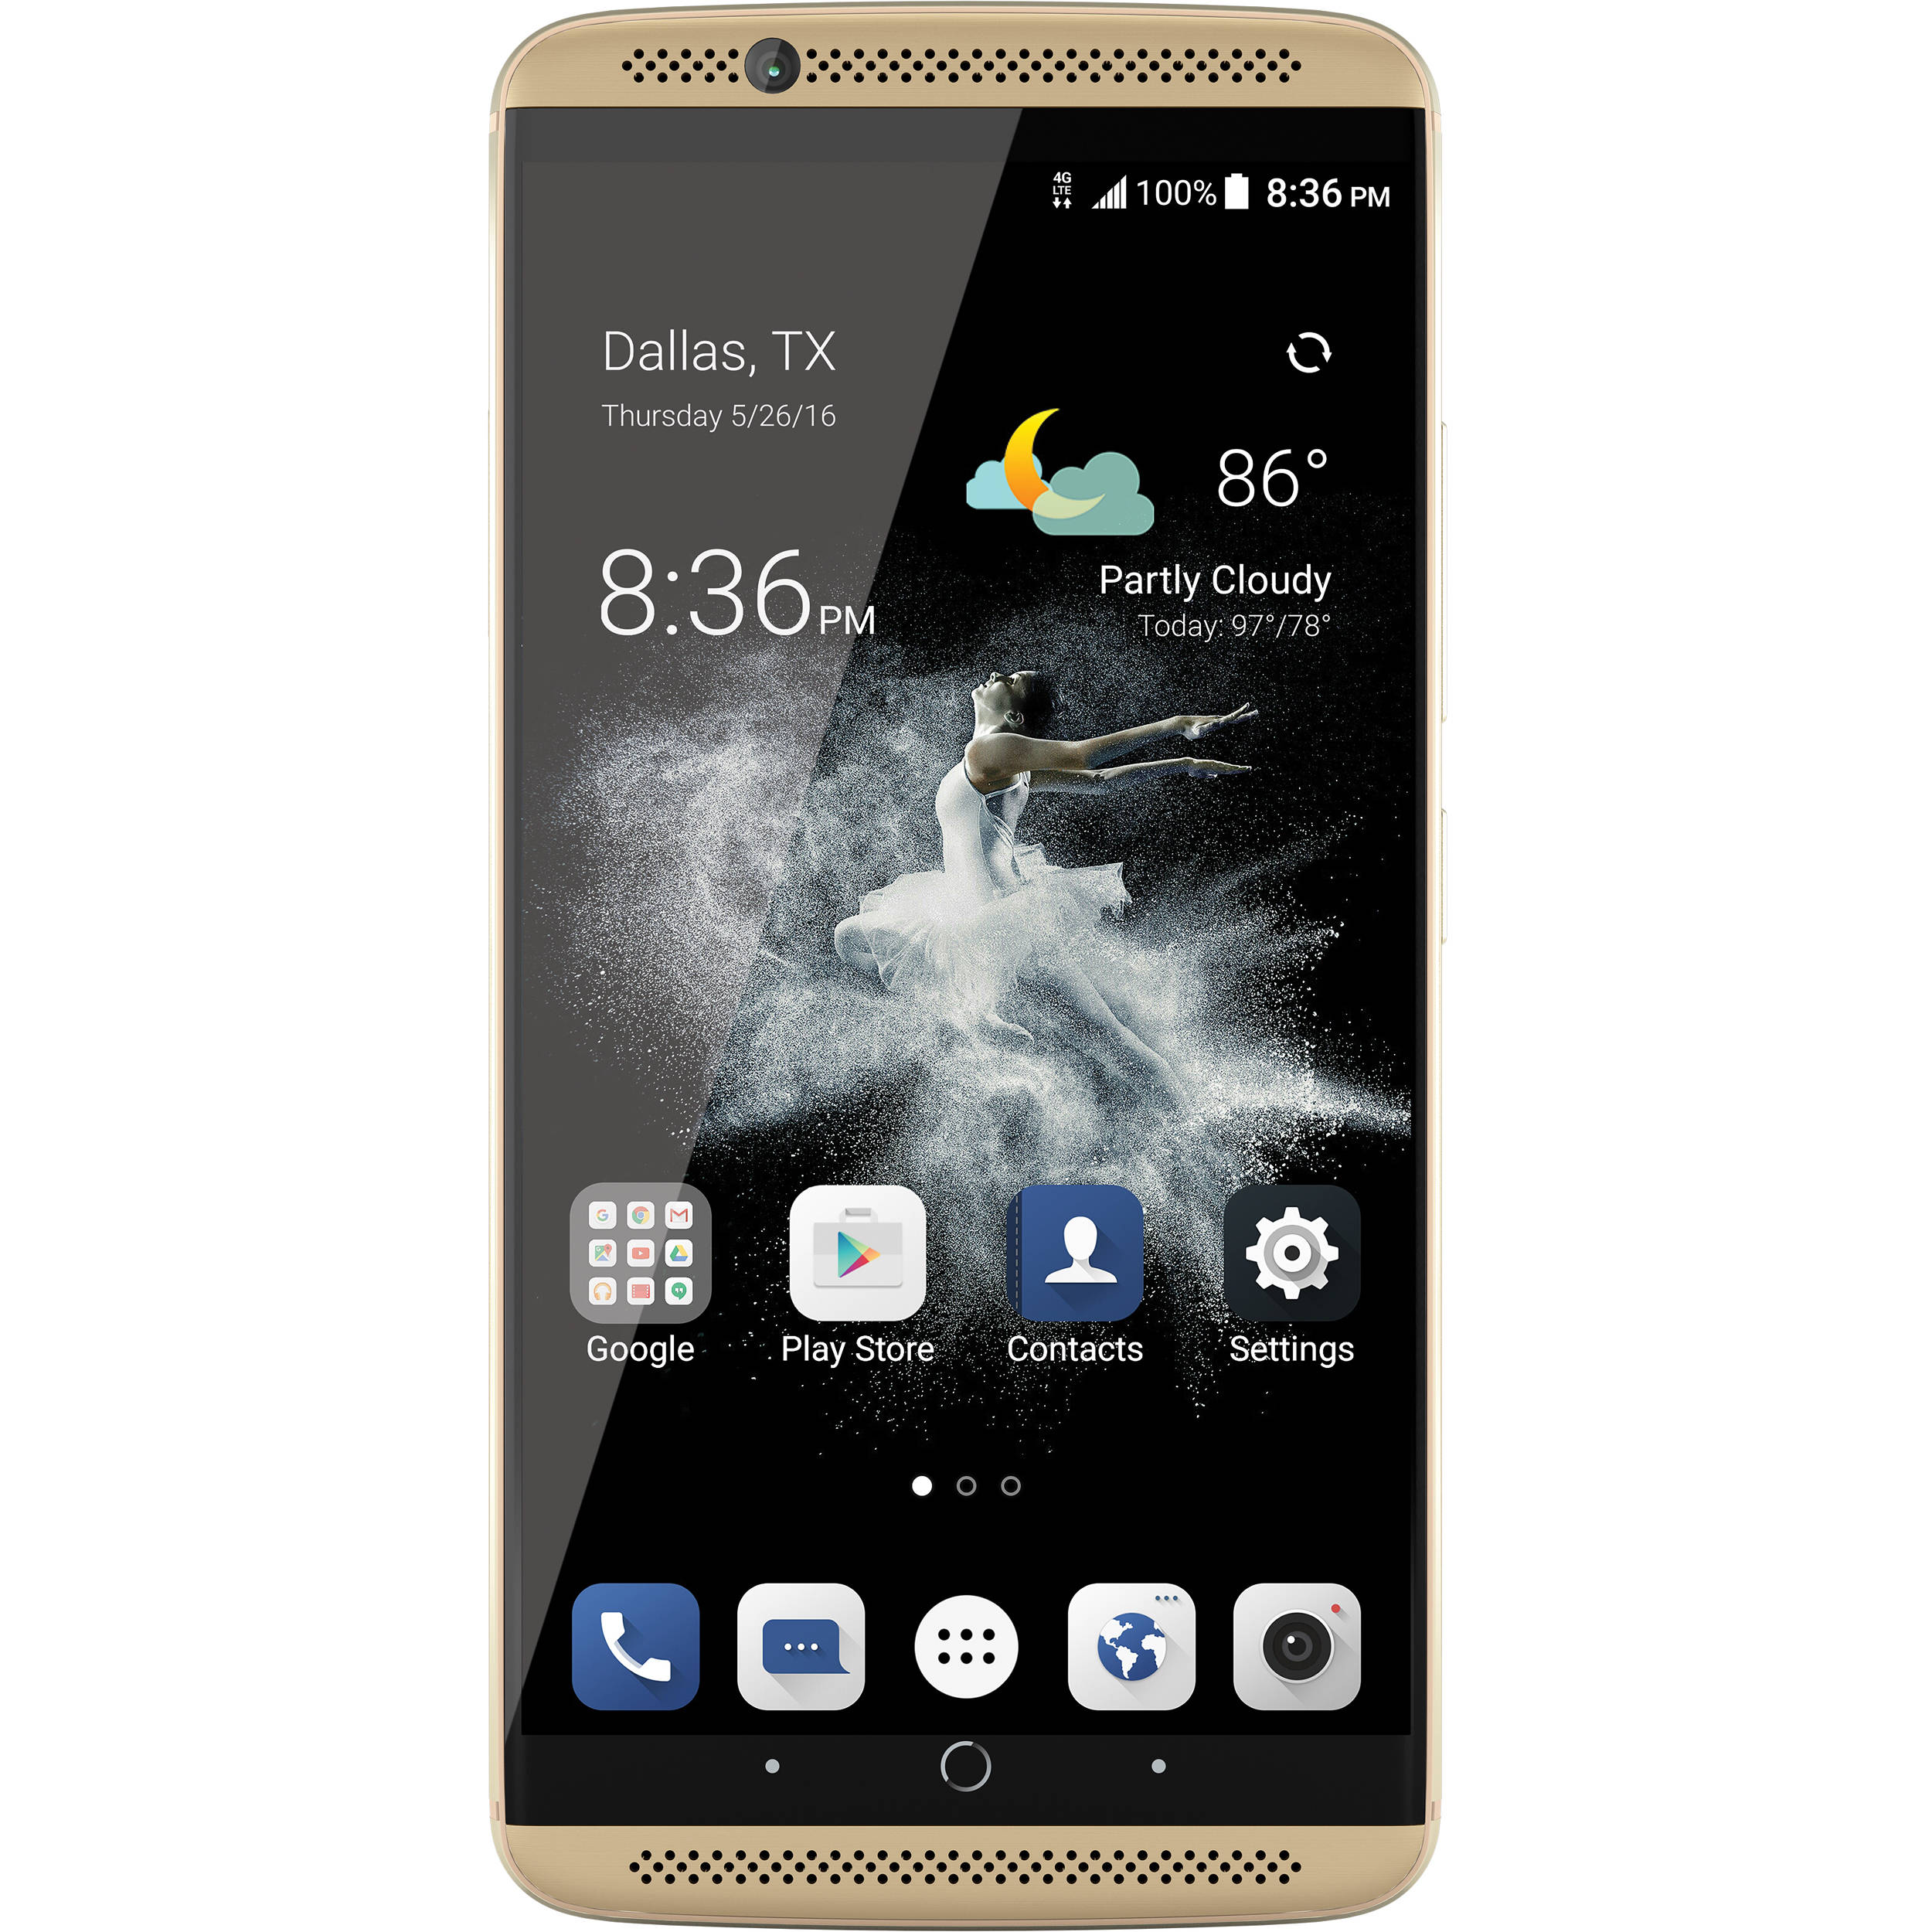 Something user zte axon 7 unlocked smartphone 64gb ion gold cancer was